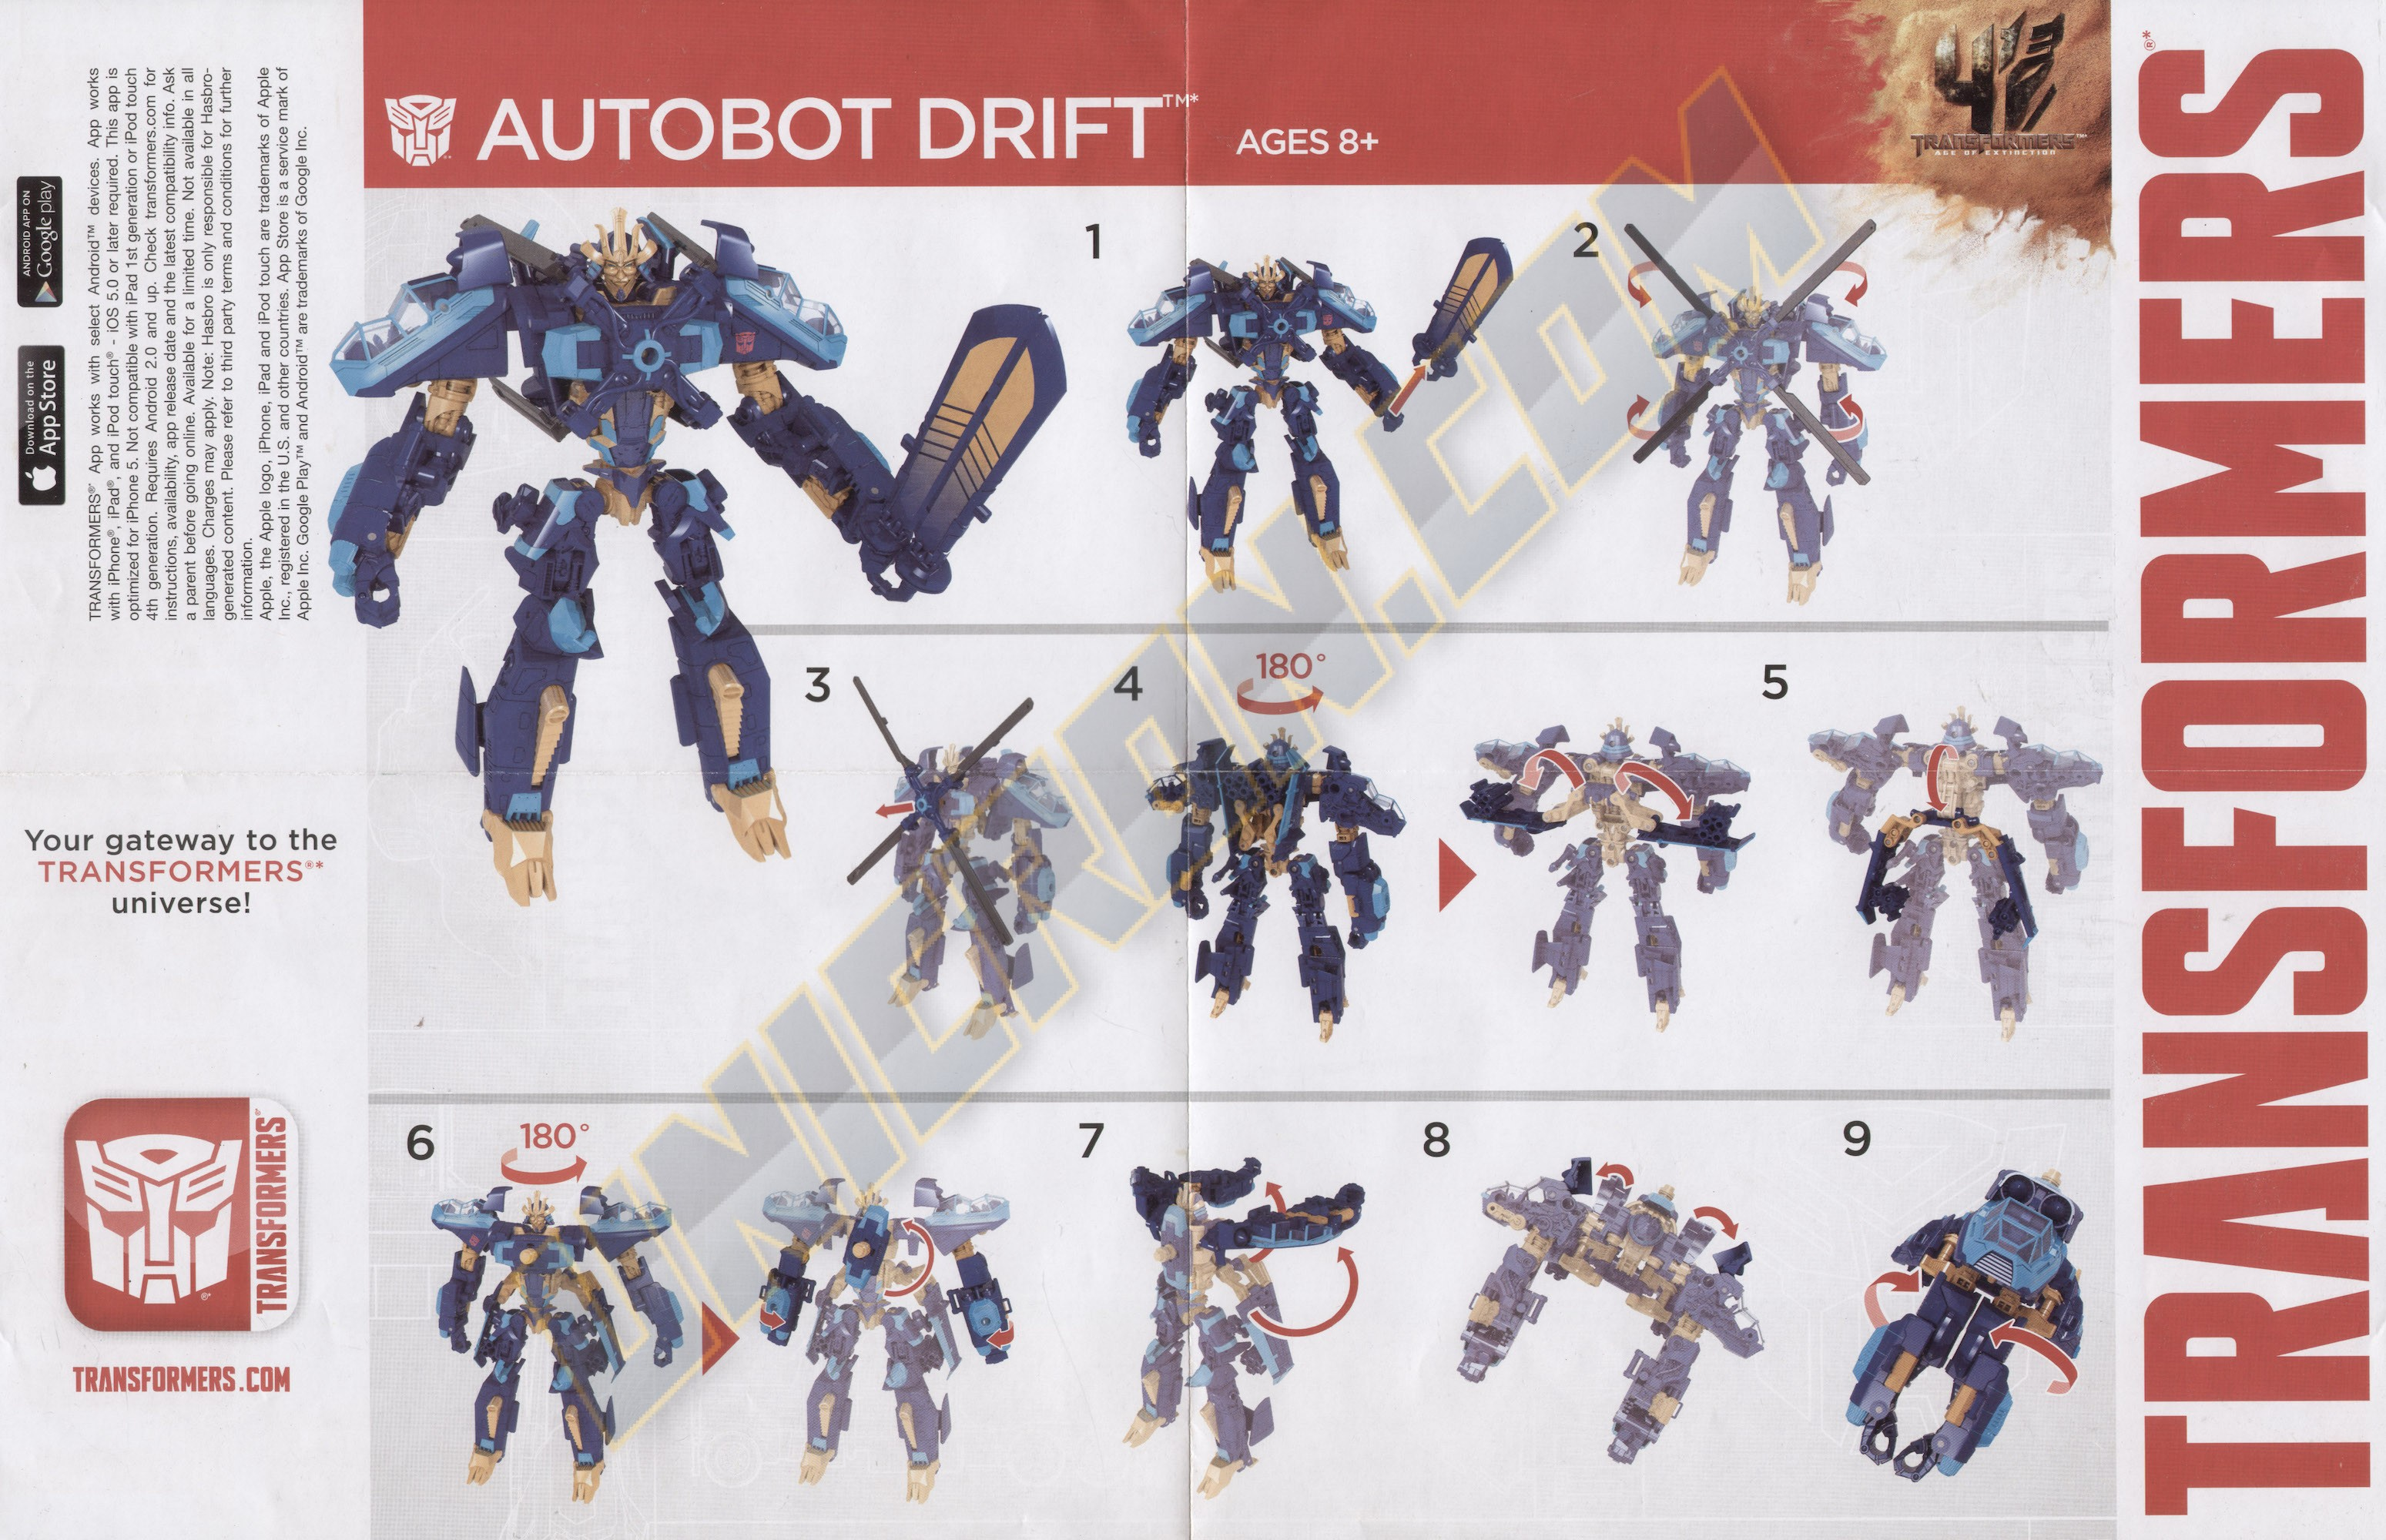 Transformers 4 Age Of Extinction Autobot Drift Voyager Helicopter